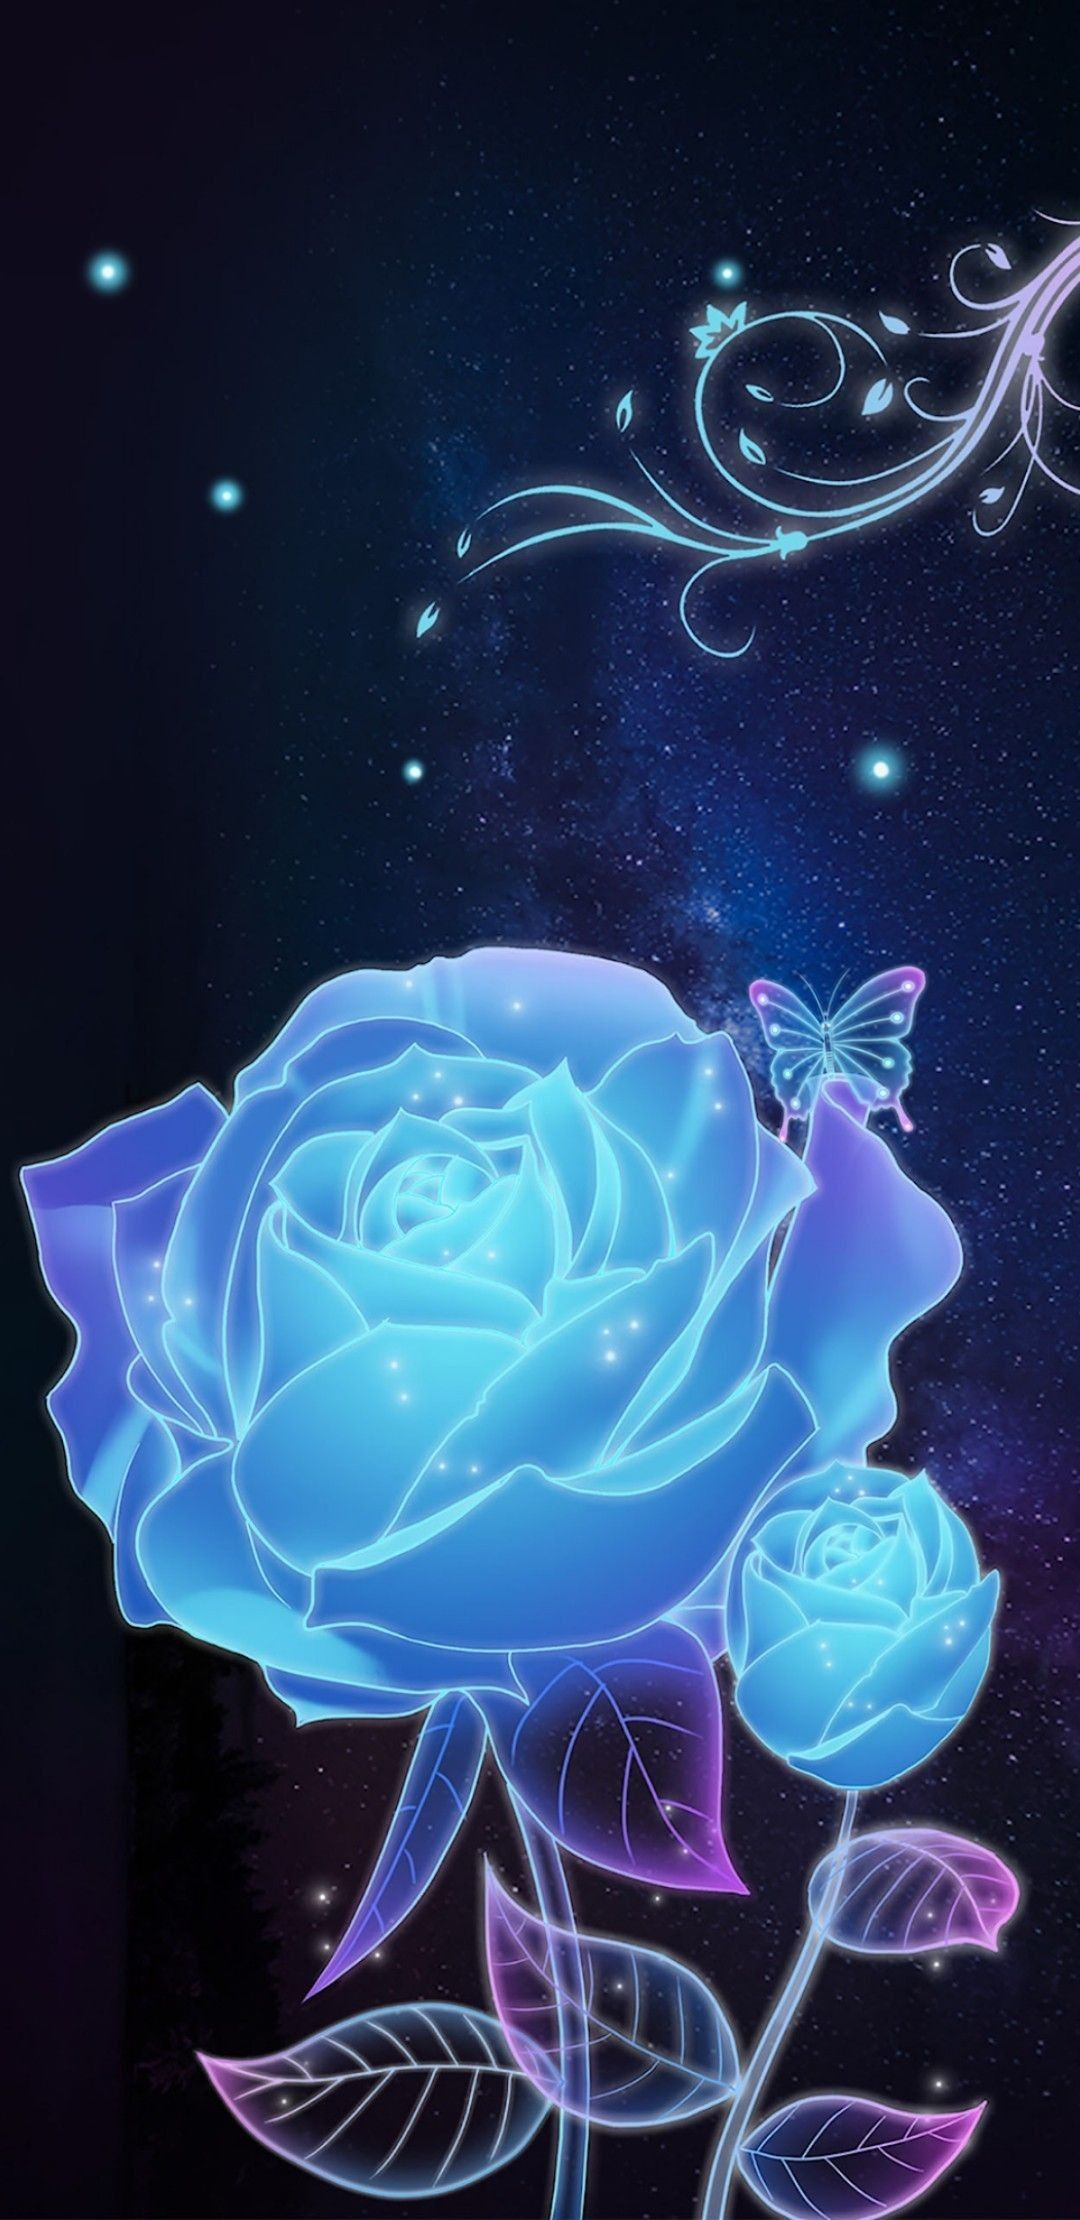 Pin By Dianna On Essences Dreamz Blue Roses Wallpaper Cute Flower Wallpapers Rose Wallpaper